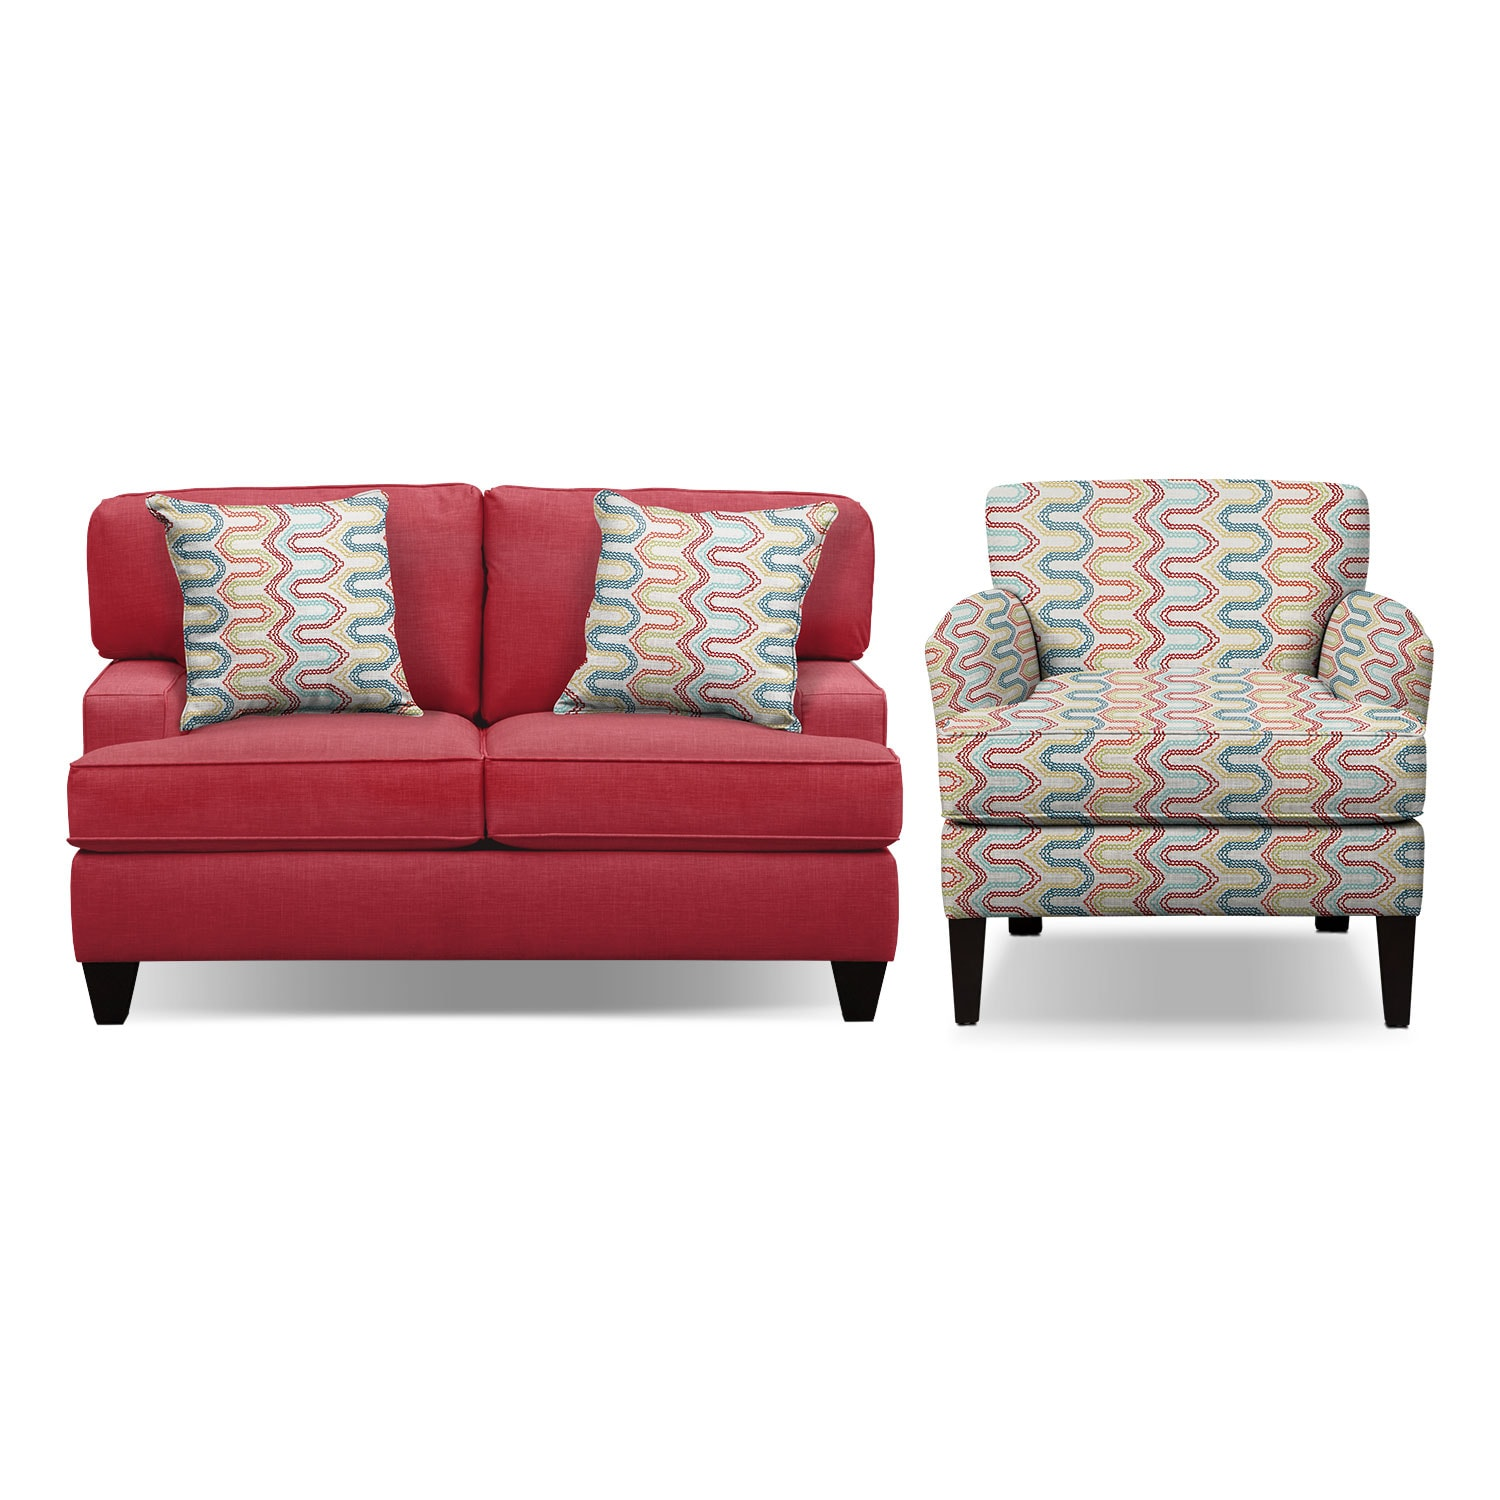 "Living Room Furniture - Conner Red 63"" Sofa and Accent Chair Set"